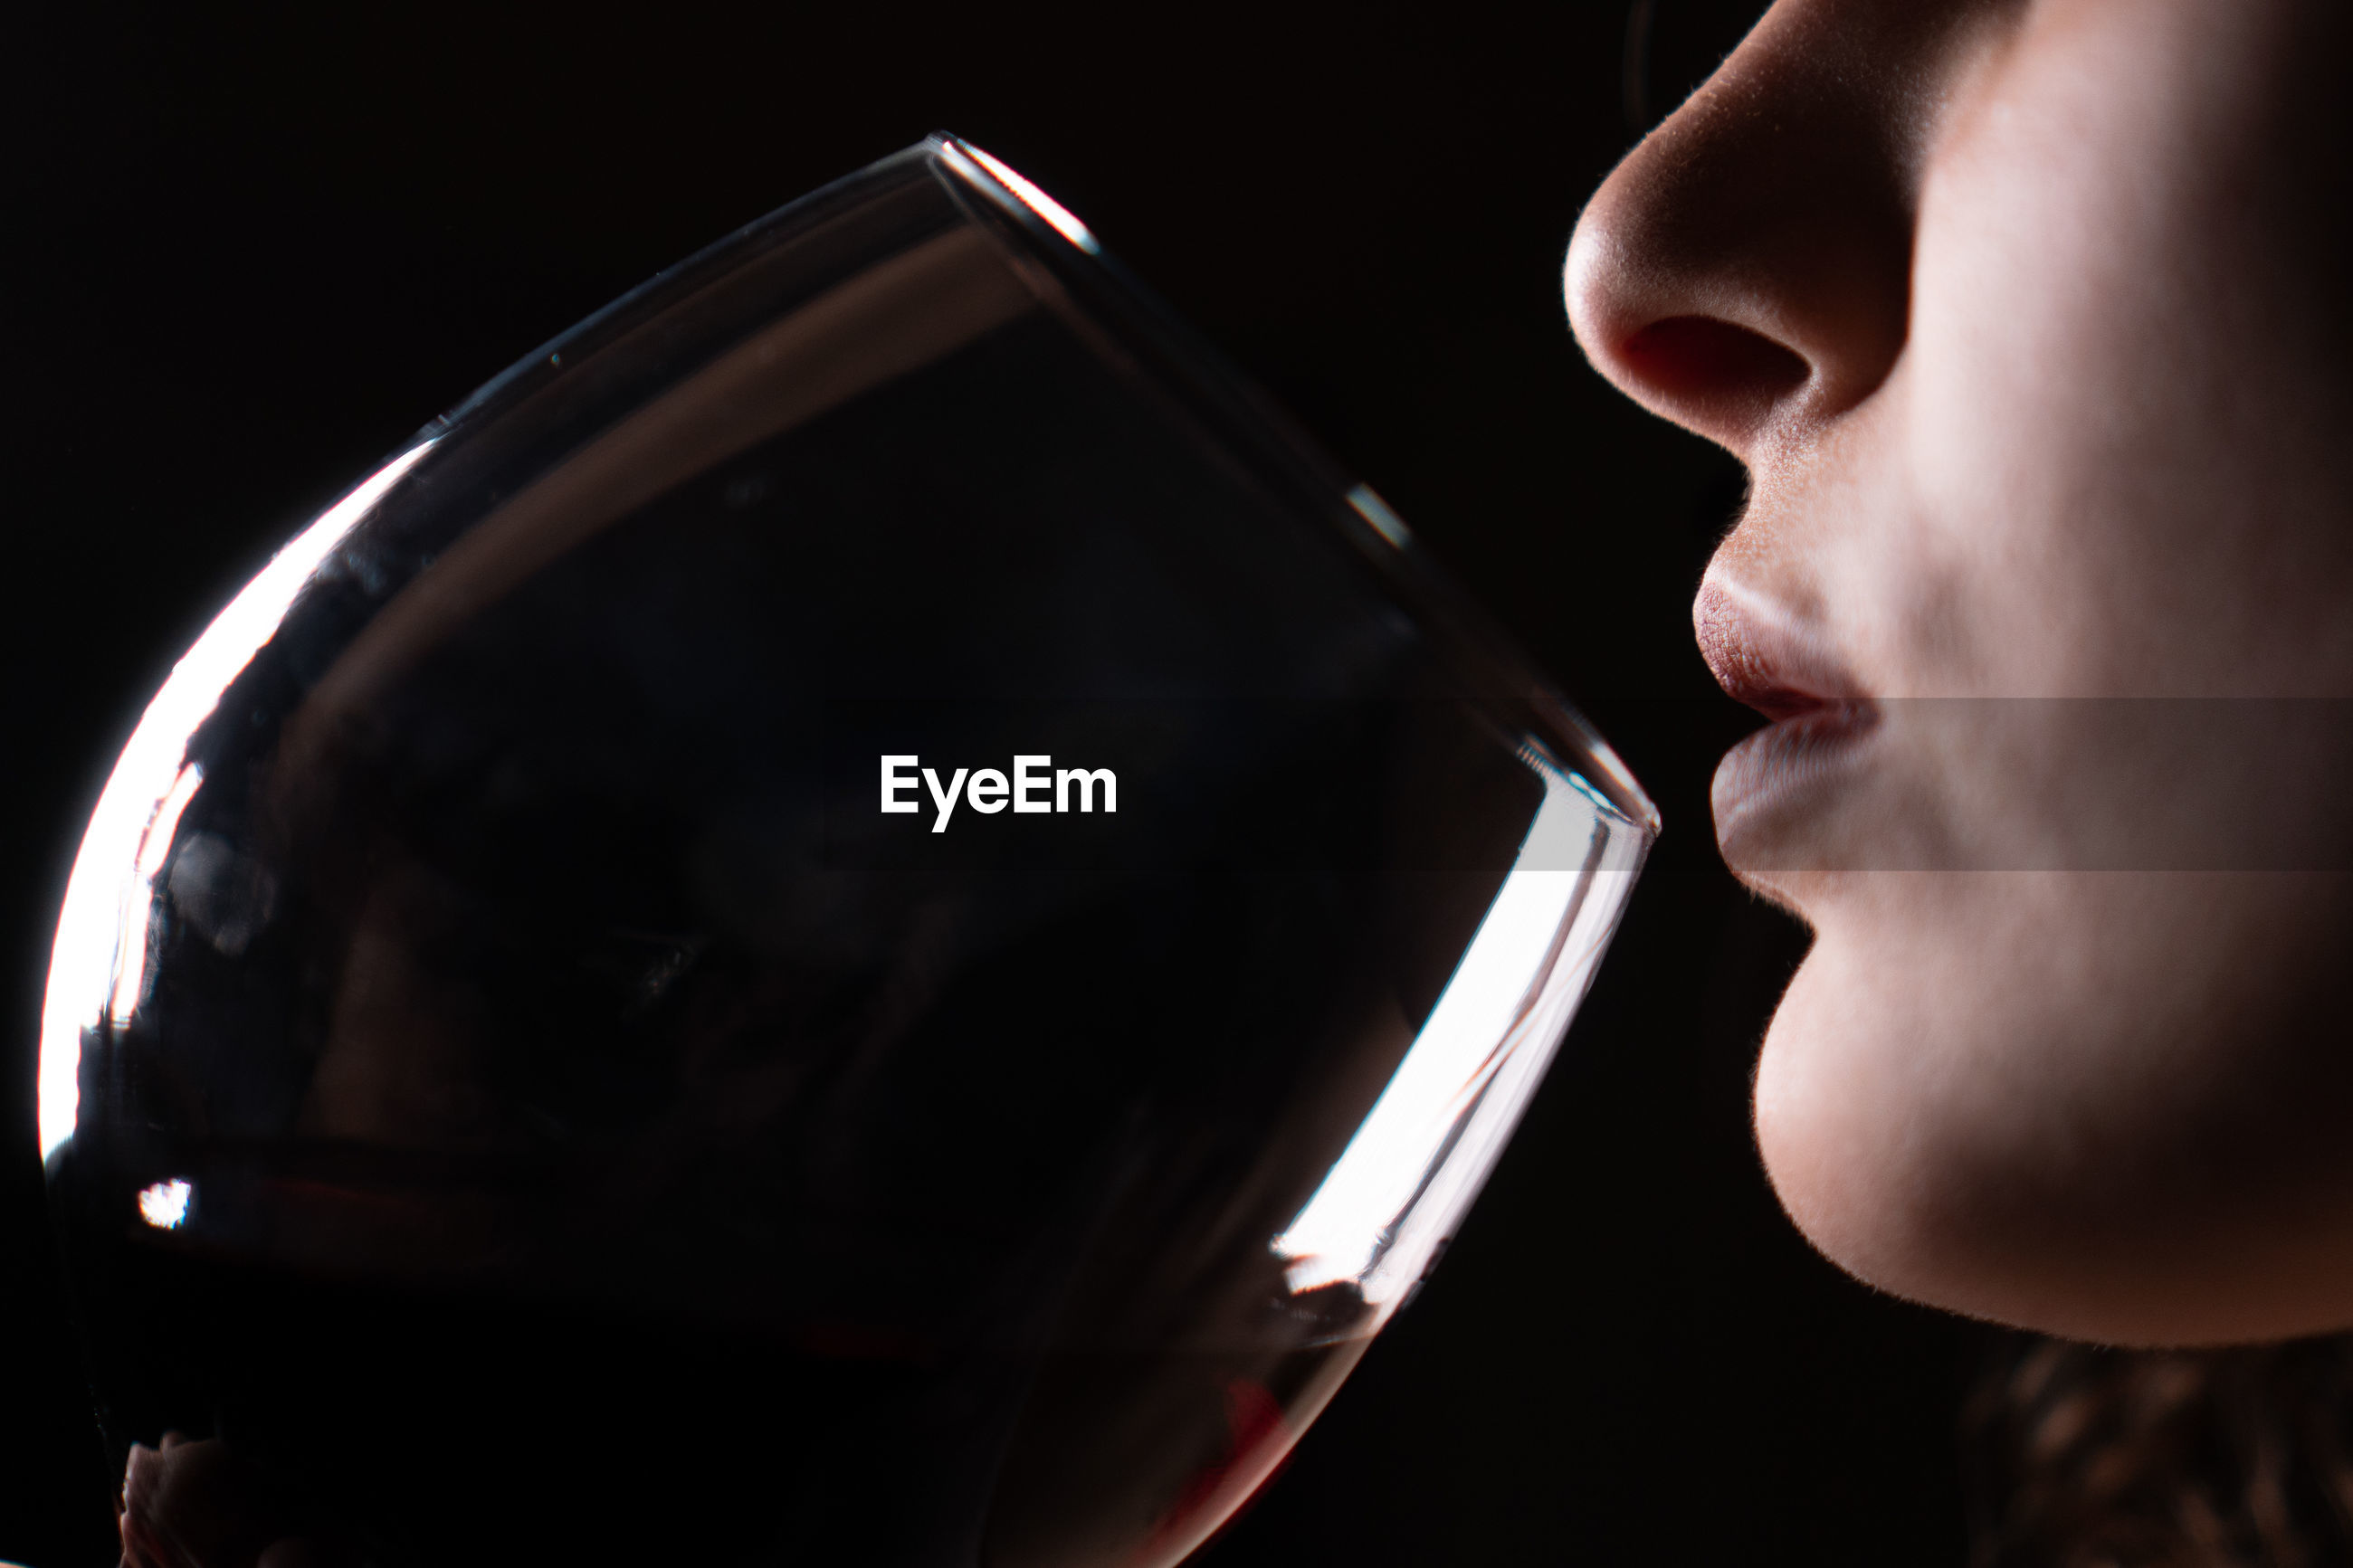 CLOSE-UP PORTRAIT OF A WOMAN DRINKING FROM GLASS